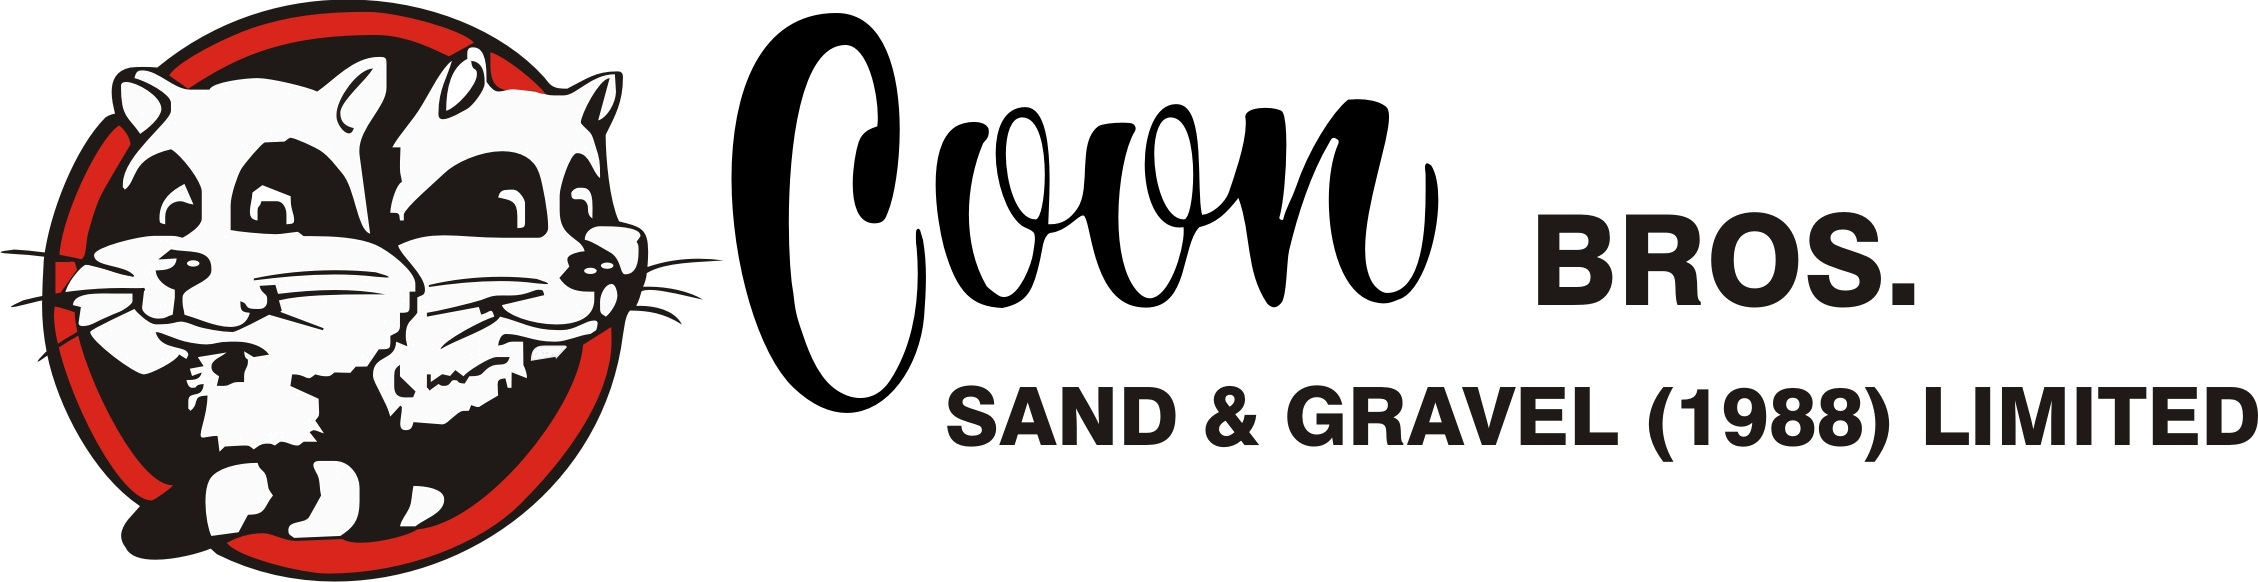 Full size lightbox of Coon Brothers Sand & Gravel image 3